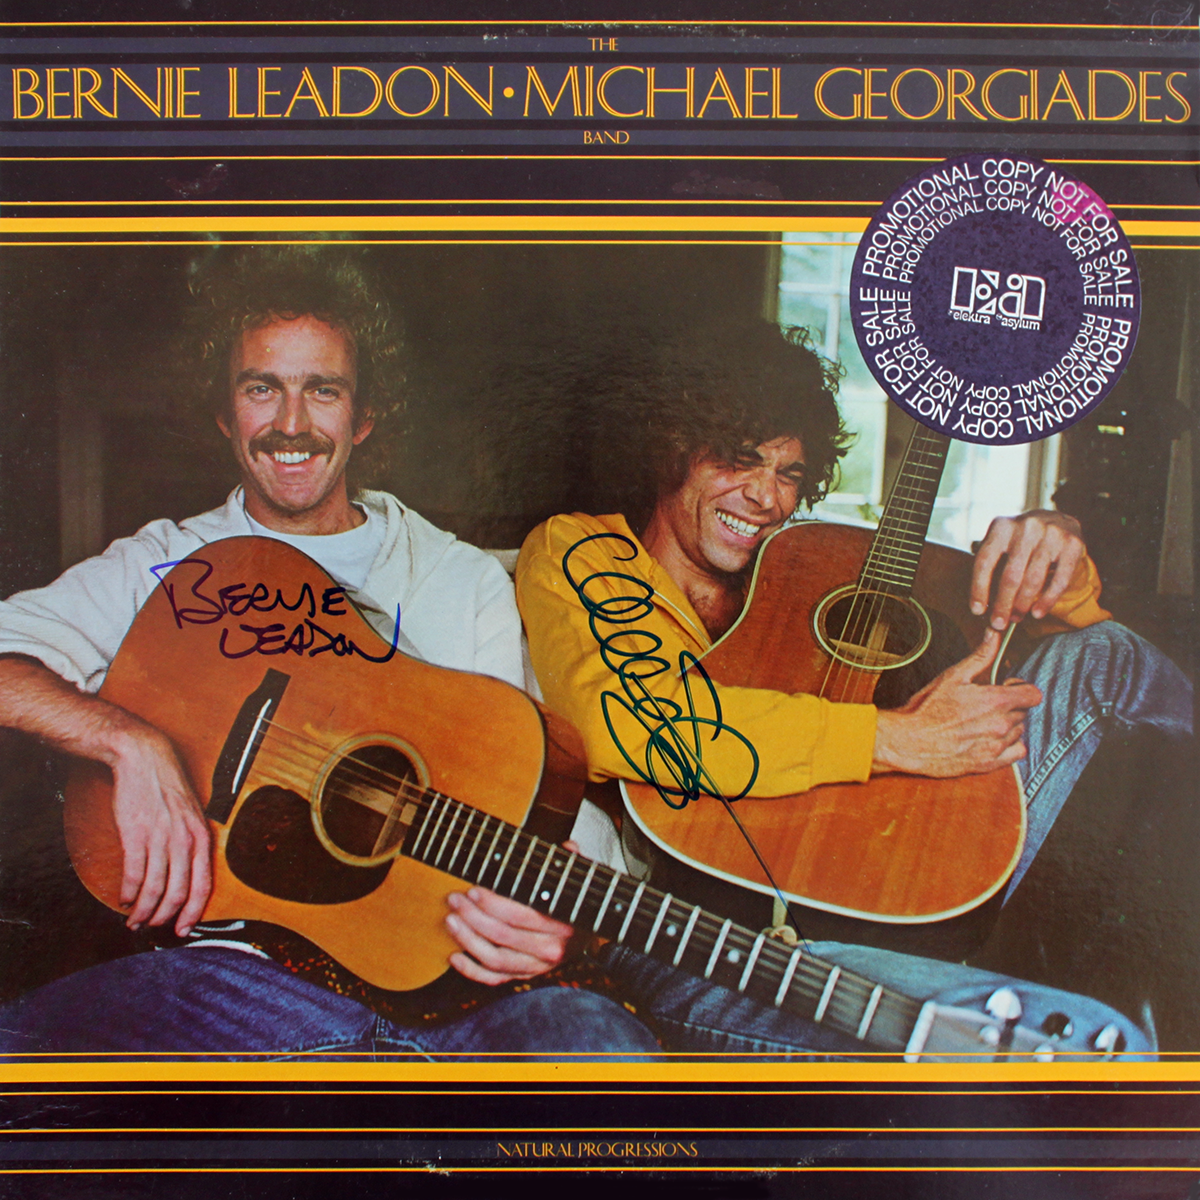 Bernie Leadon & Michael Georgiades Band LP - Natural Progressions